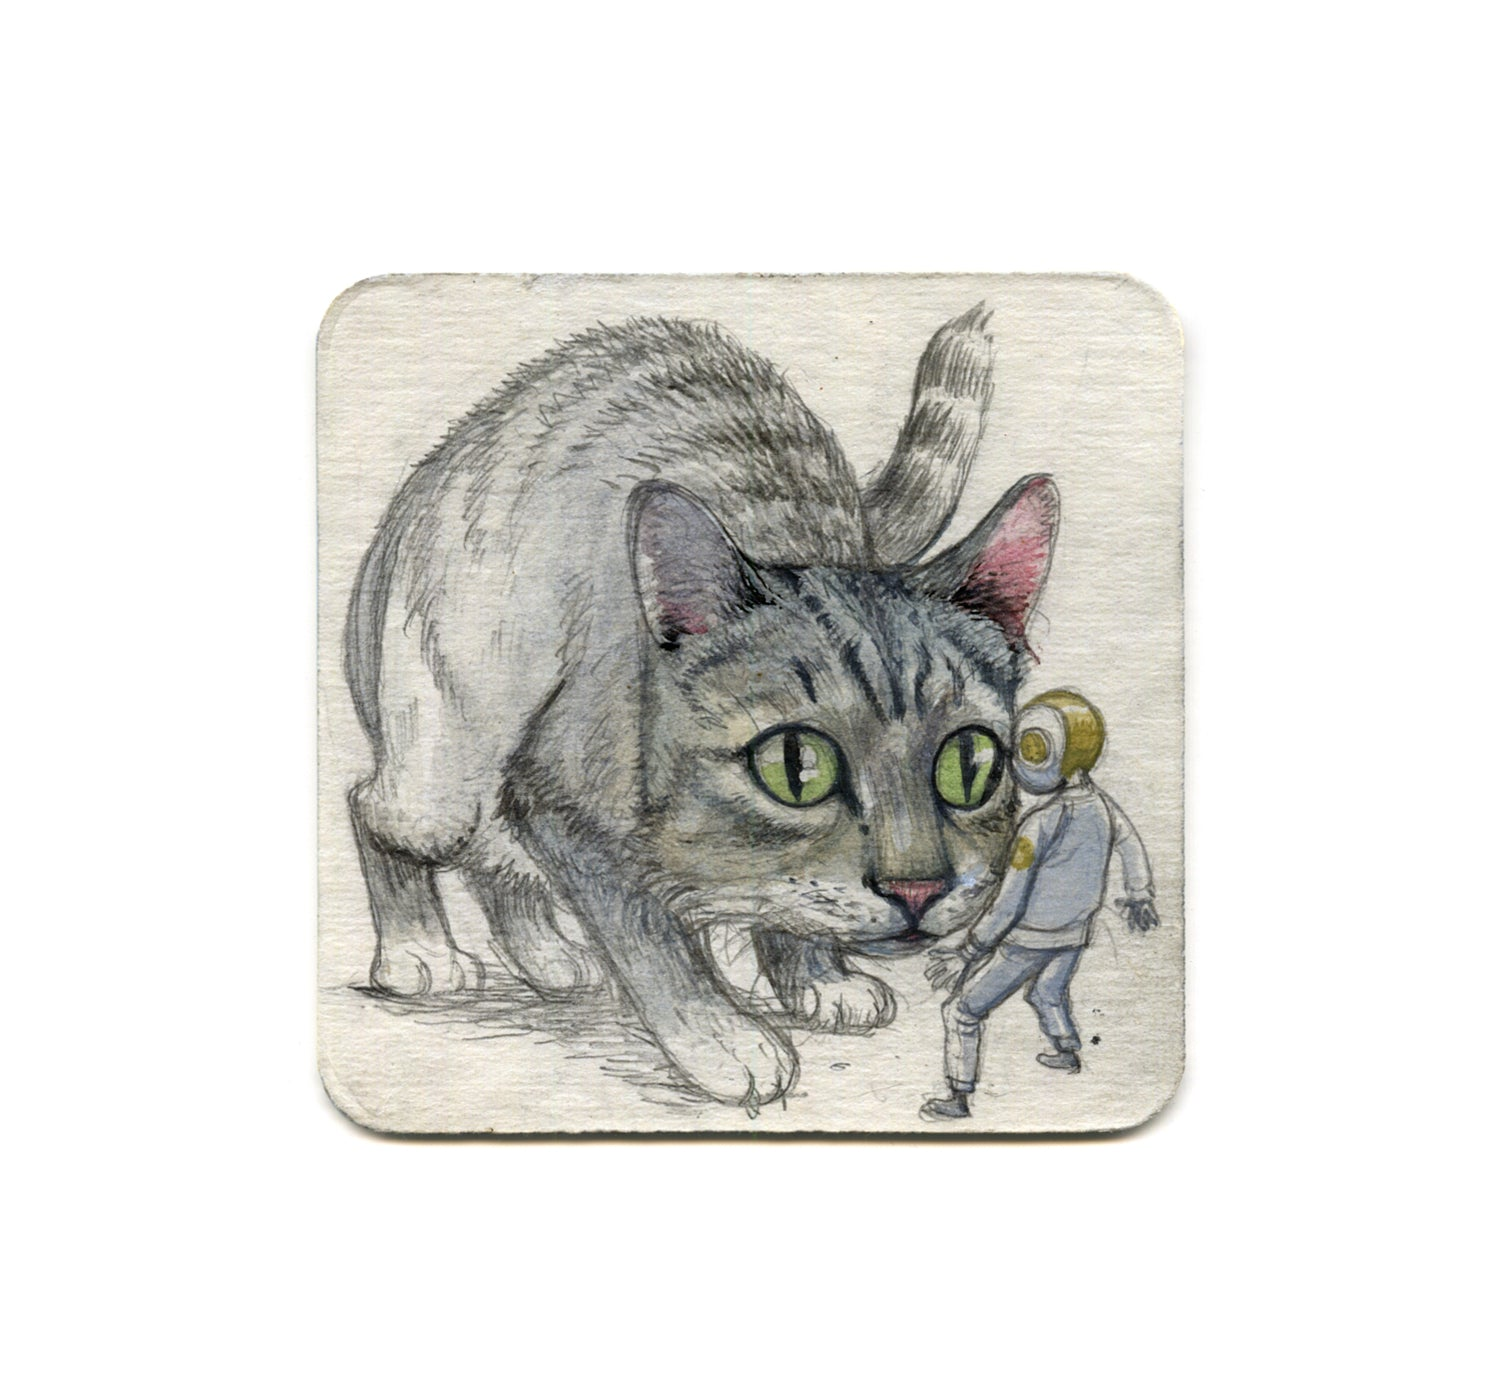 Farel Dalrymple - I Can't Stop Thinking Of Me Thinking Of You Coaster